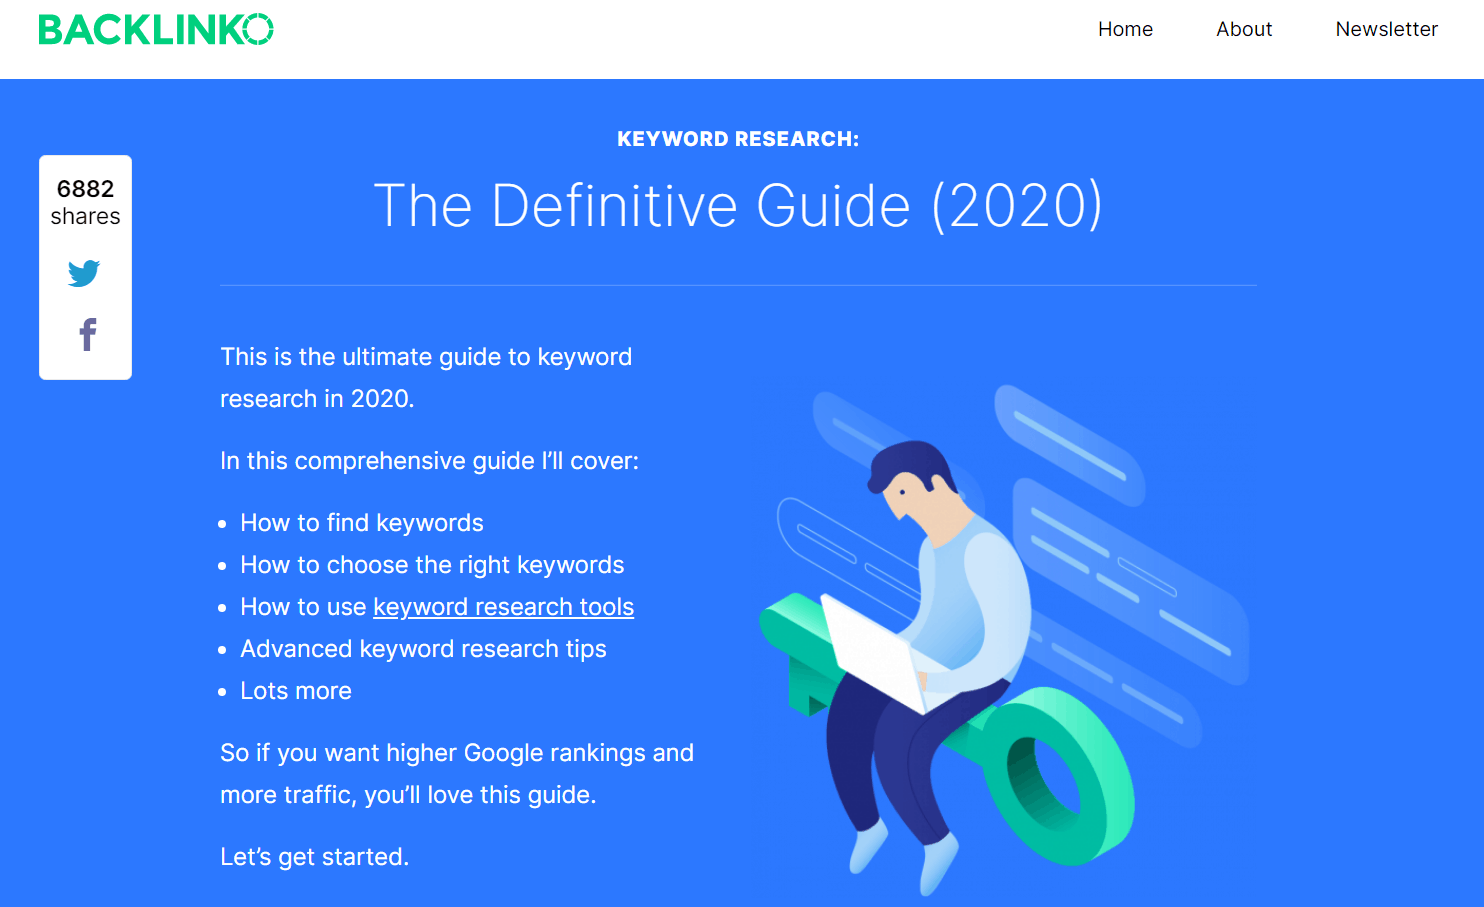 Backlinko-KW-Research-Guide-Example